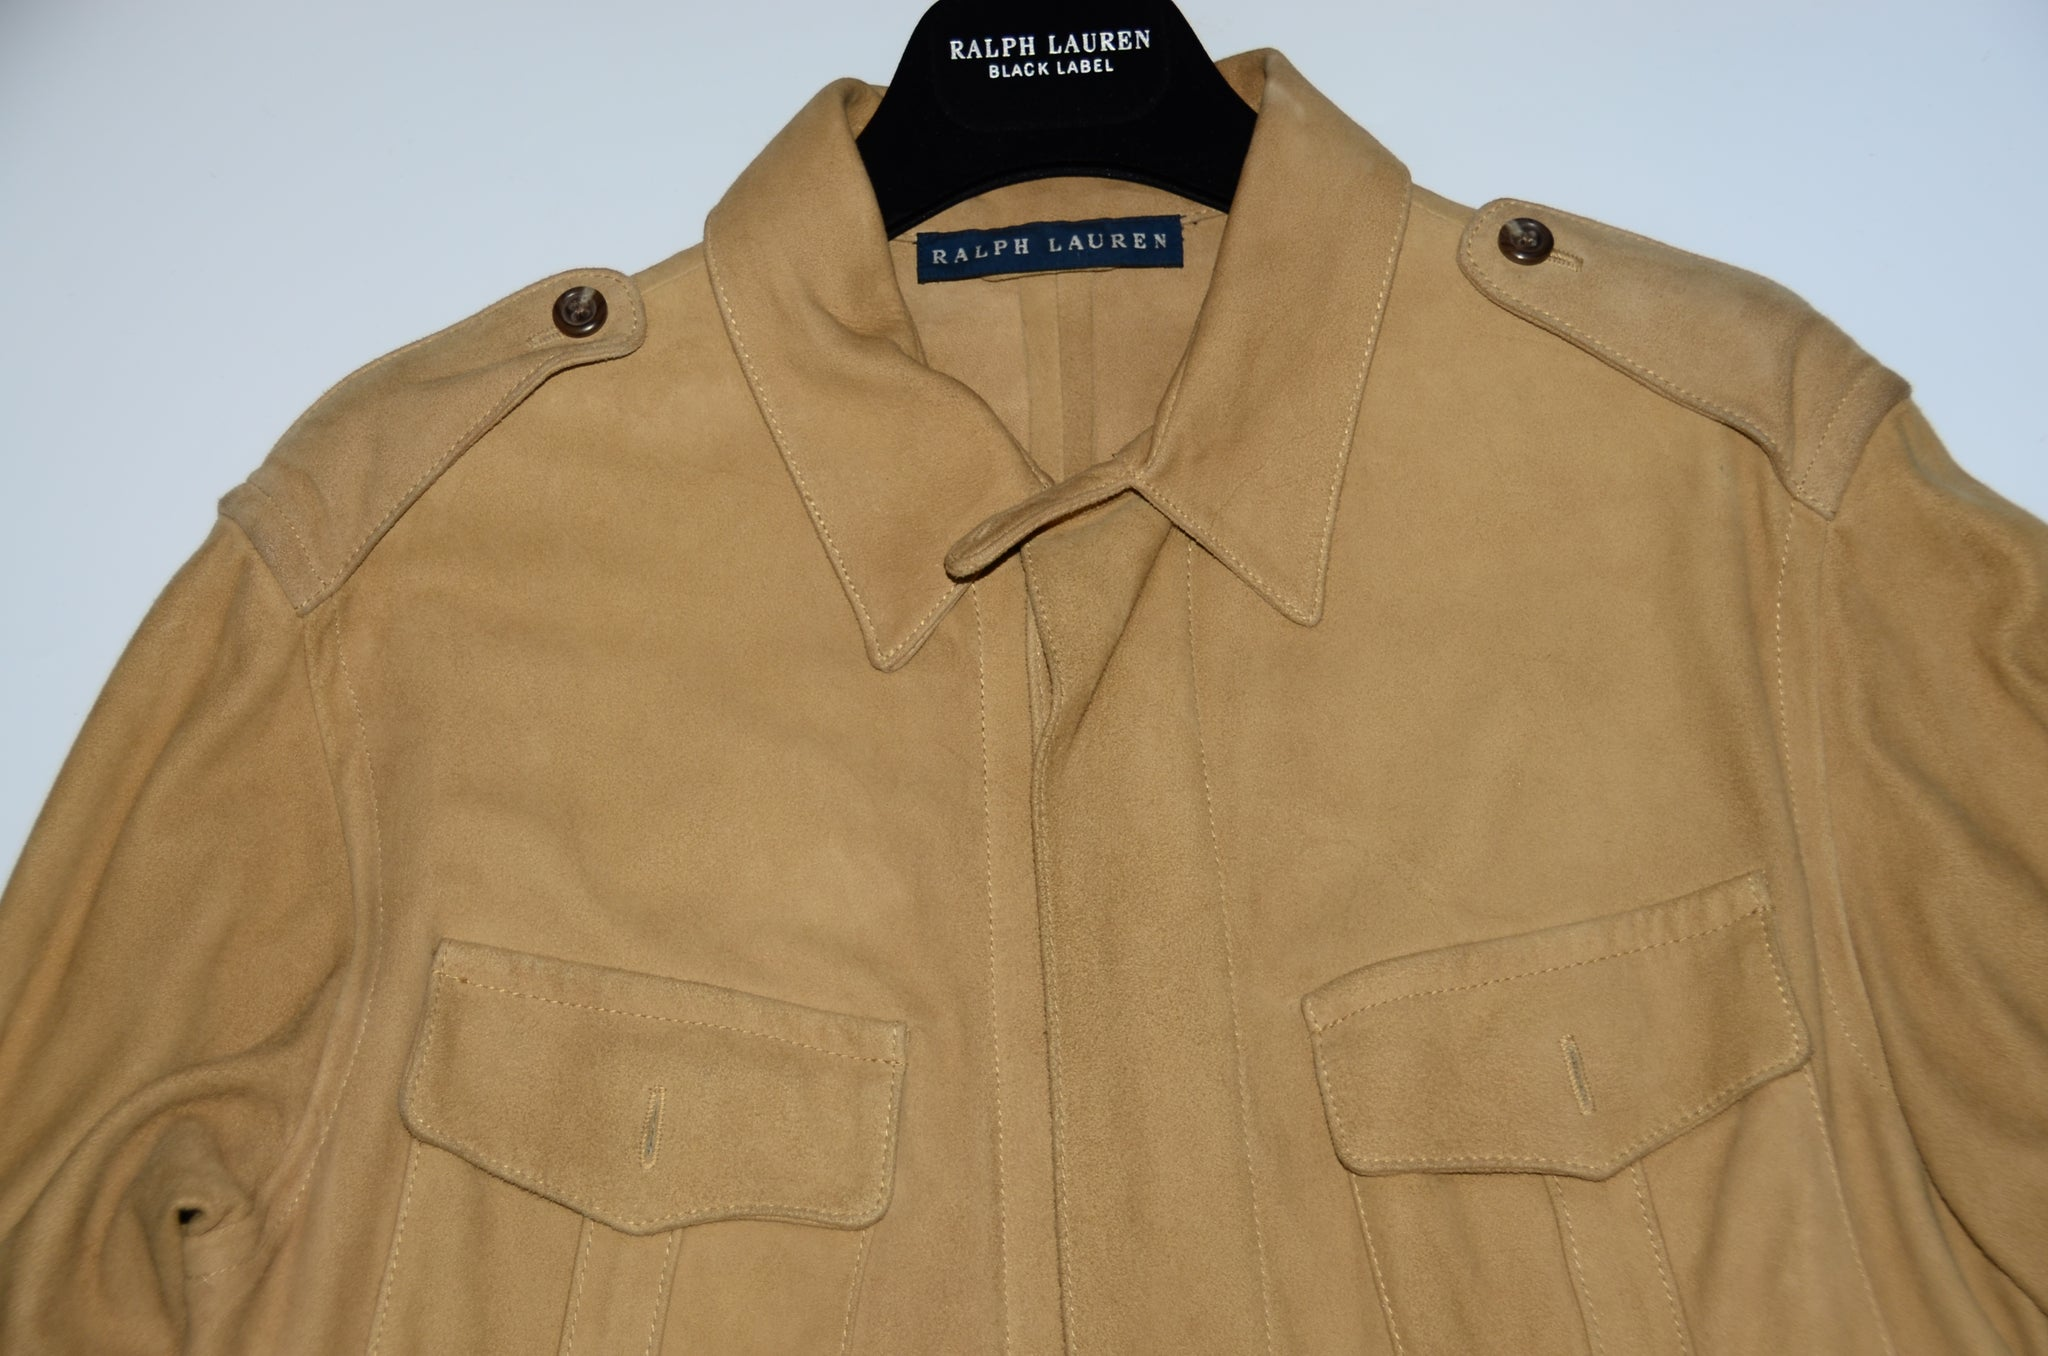 Ralph Lauren Blue Label Jacket - Iconics Preloved Luxury